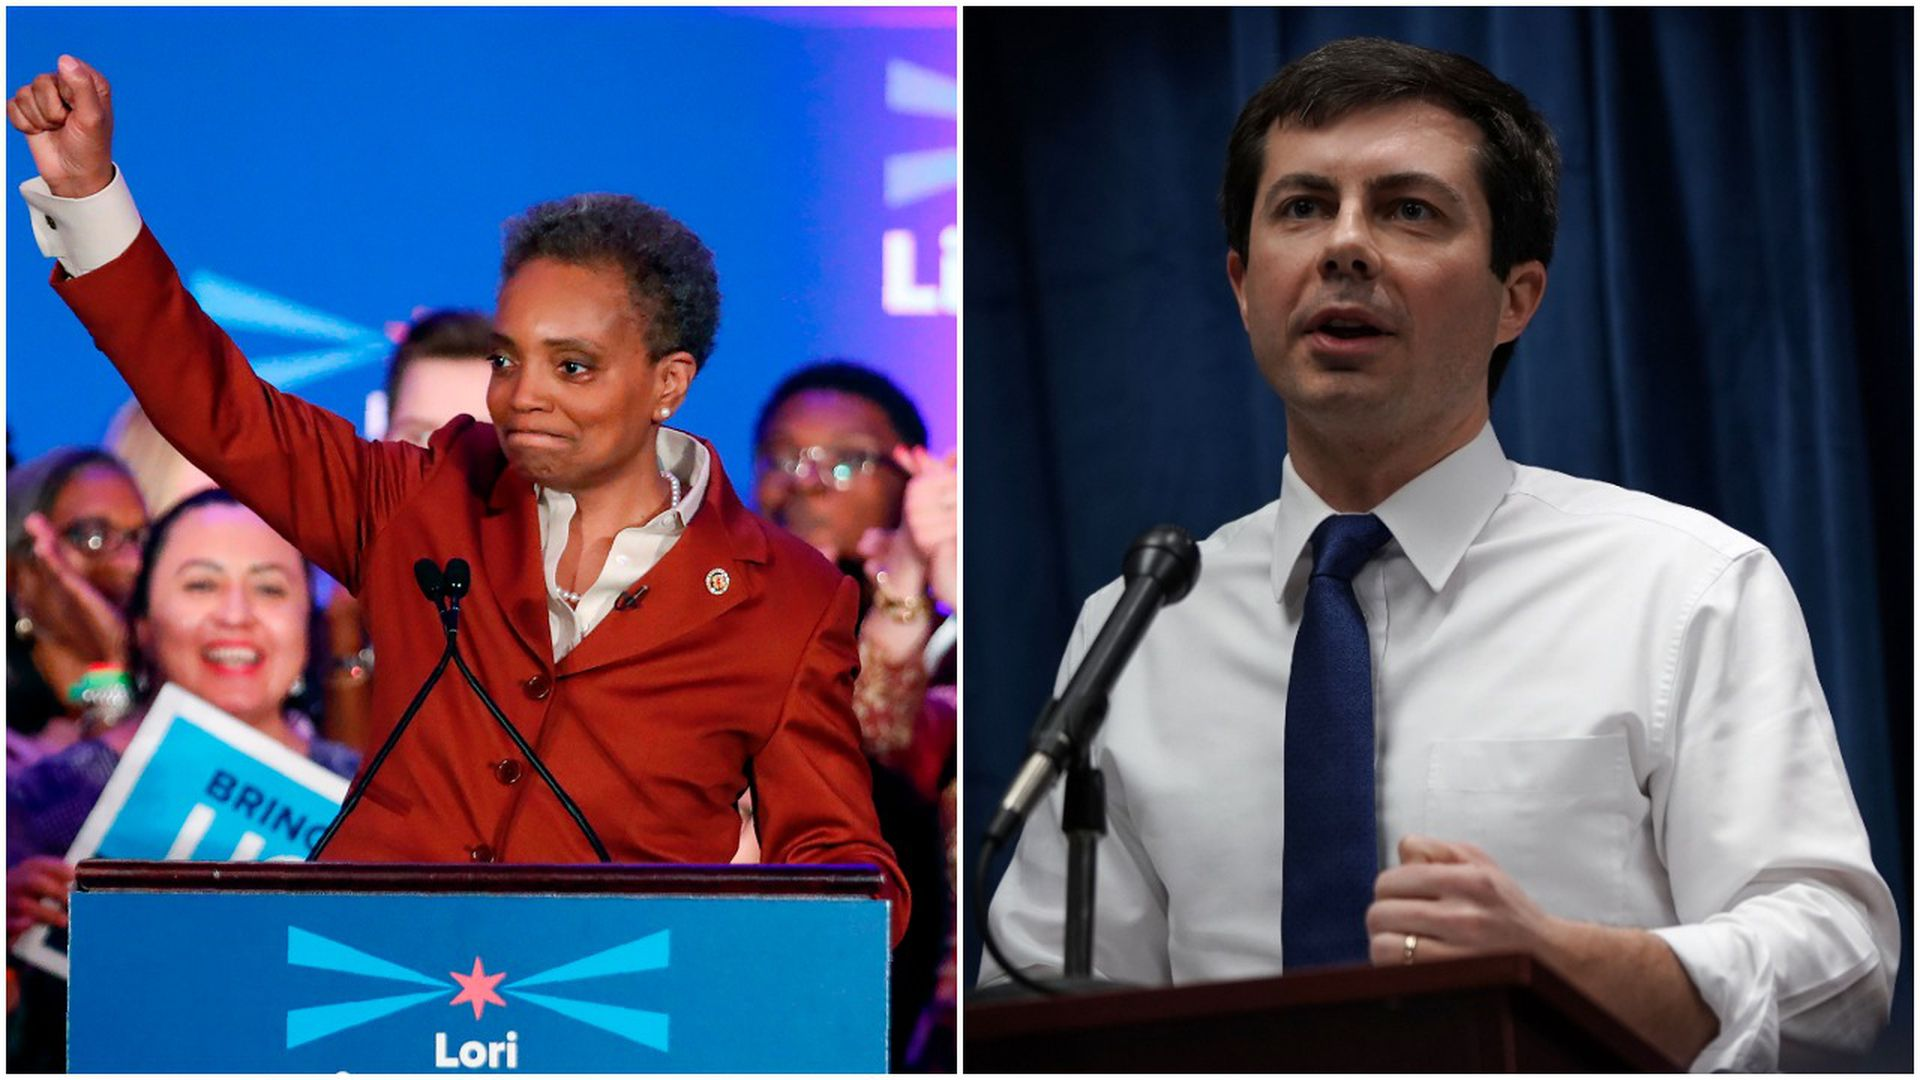 This is a splitscreen image. On the left, Lori Lightfoot raises a fist in victory behind a podium. On the right, pete buttigieg speaks into a micrphone.